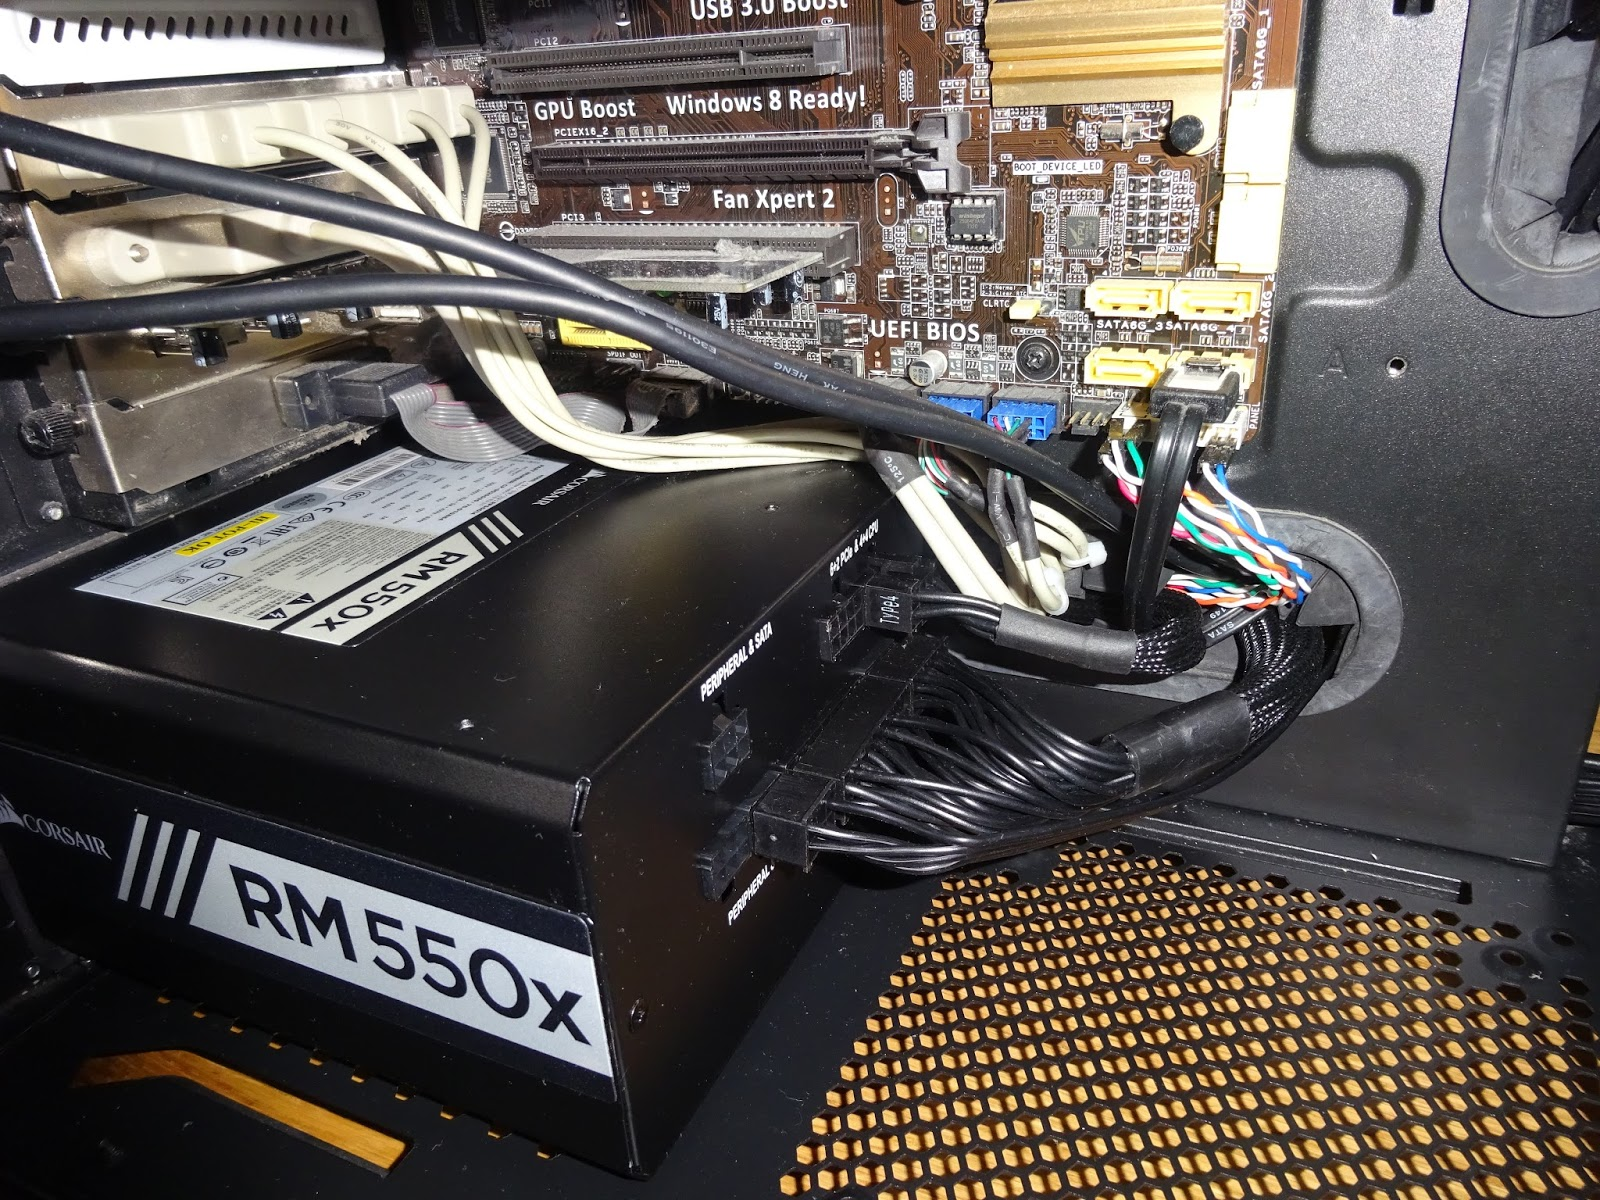 Tynemouth Software Reverse Pc Build Do Not Need Want The Fan Kill Switch To Be Illuminated When I Have Replaced With A Corsair Rm550x This Is Still More Power Than Installed System Needs But Key Point It Will Only On Its